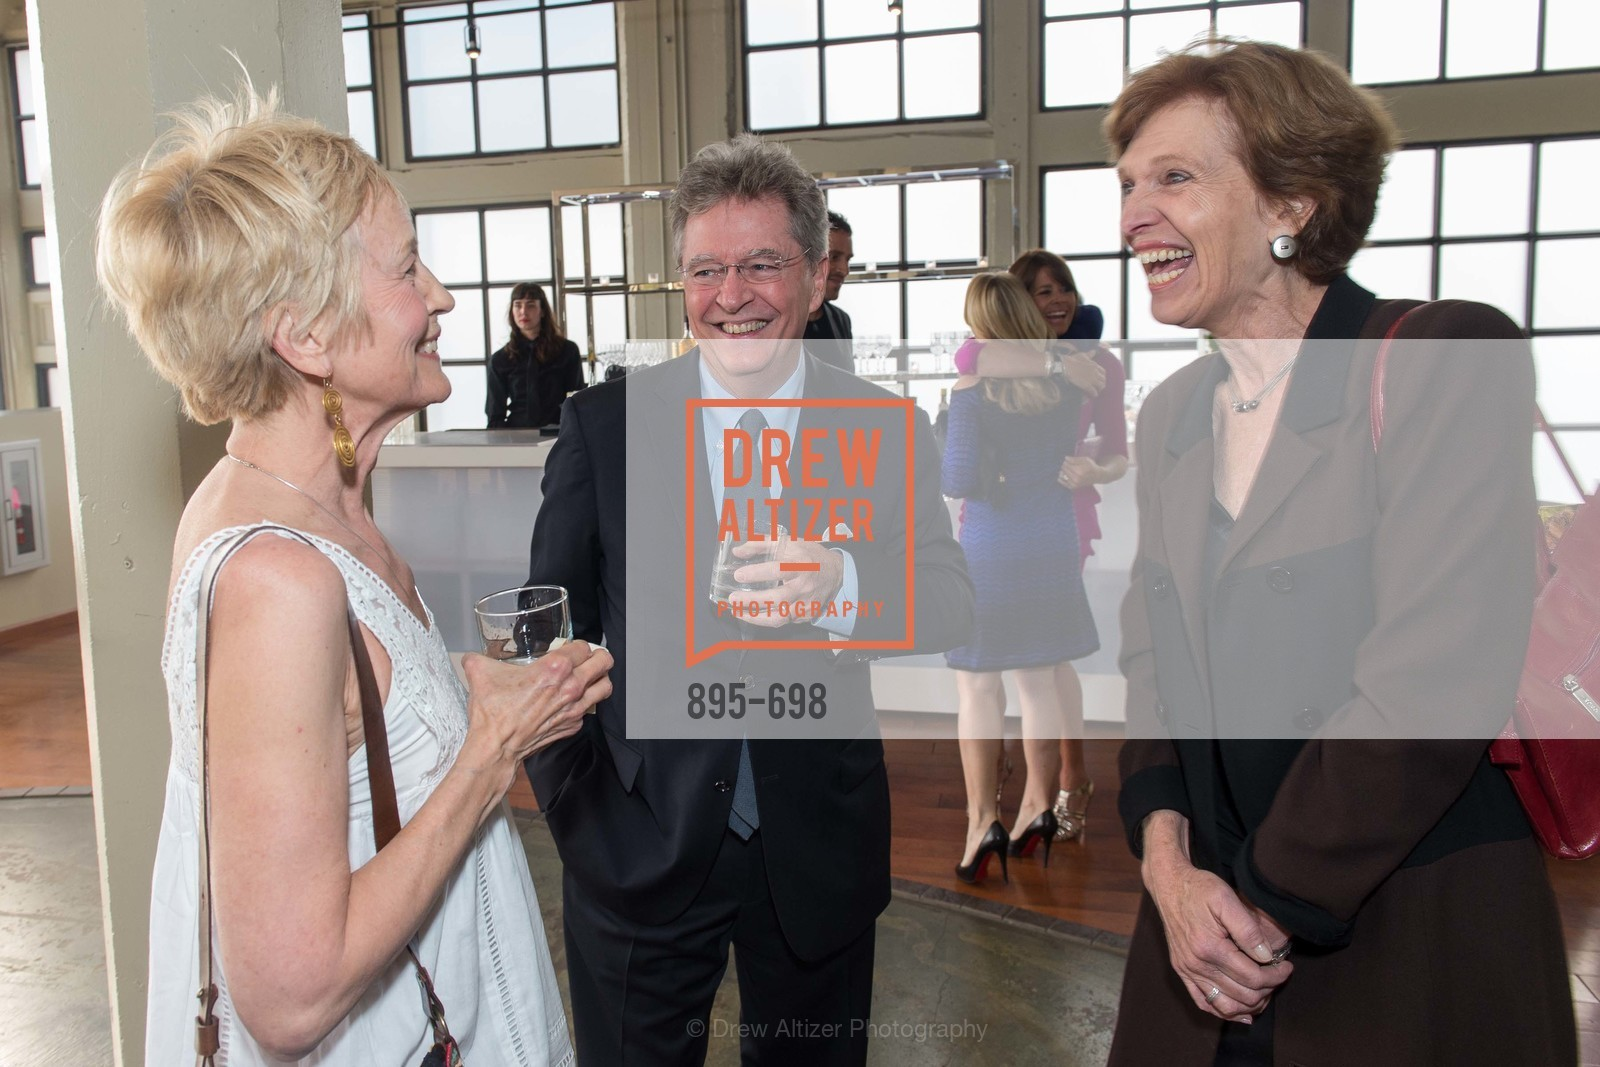 Elizabeth Reilly, Ken Cook, Morry Cater, EWG's 6th Annual Earth Dinner, US, May 6th, 2015,Drew Altizer, Drew Altizer Photography, full-service event agency, private events, San Francisco photographer, photographer California